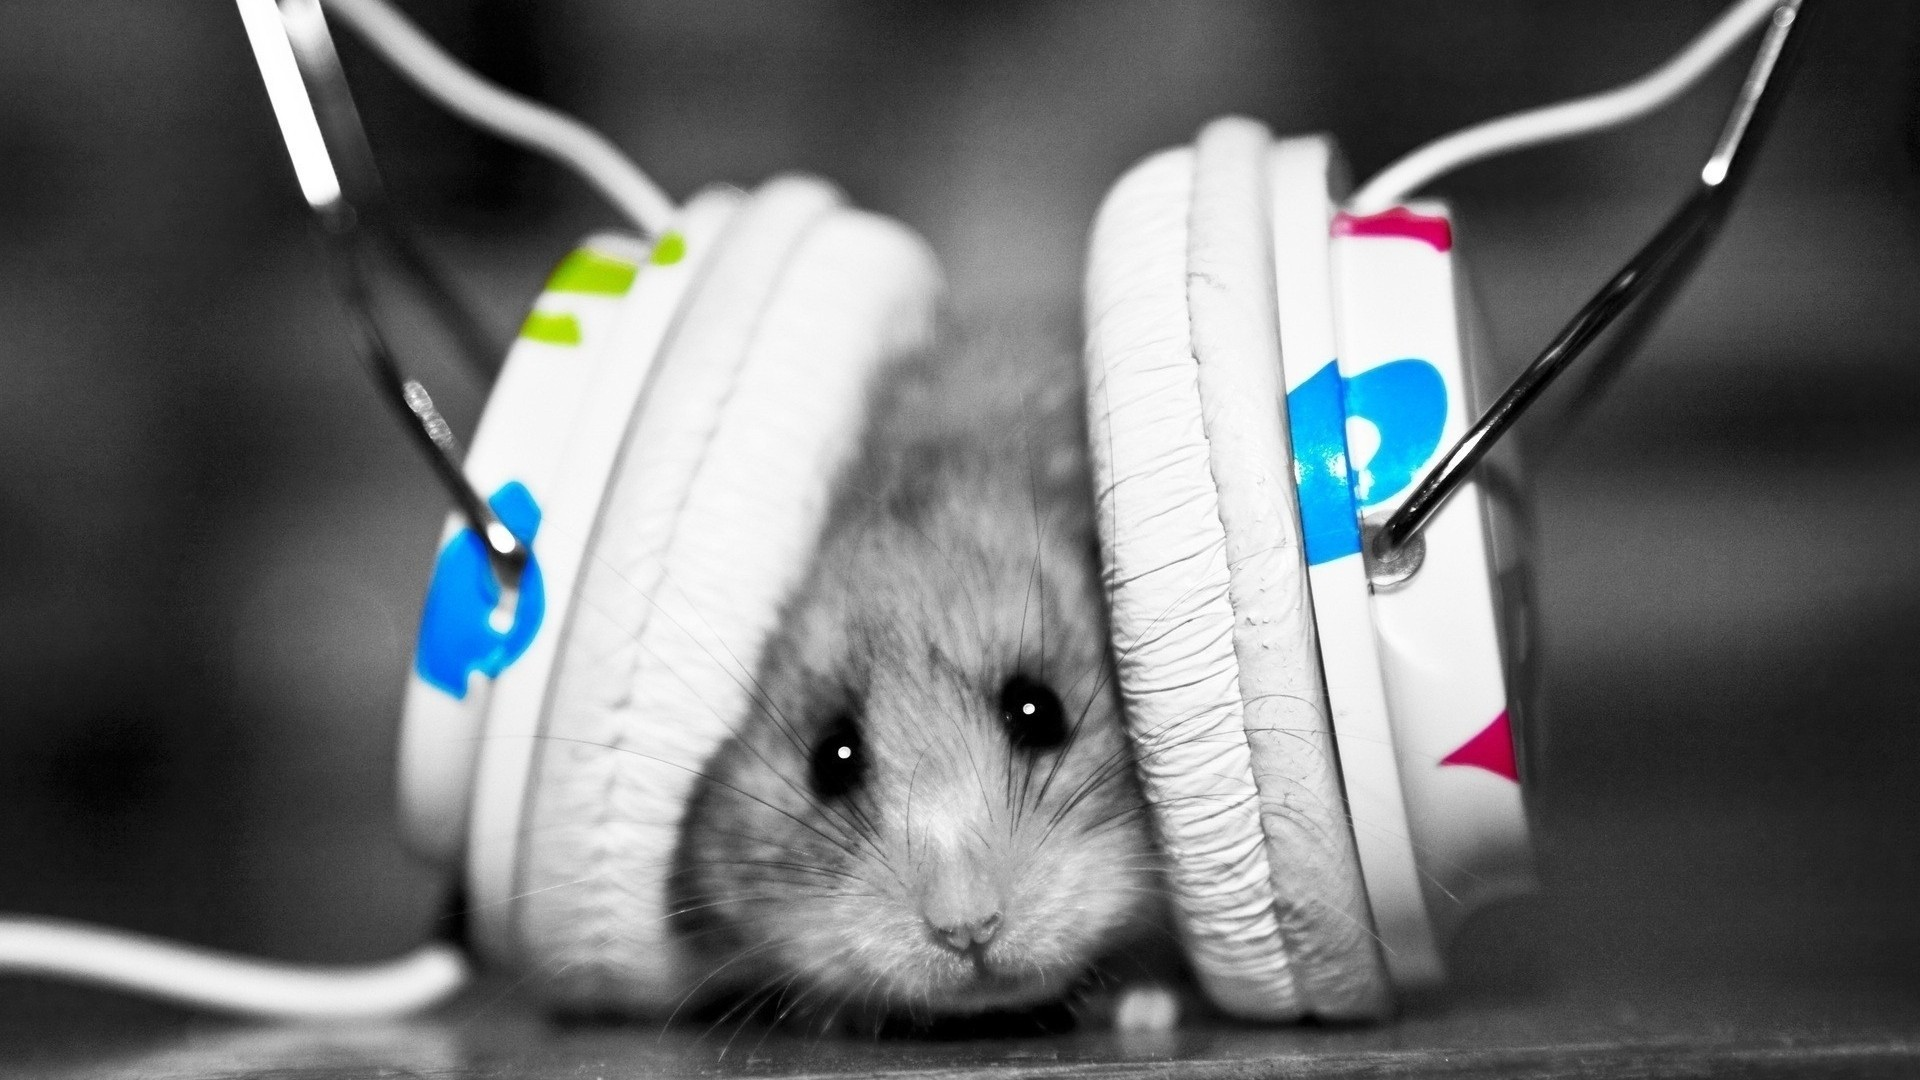 Headsets Hamster Wallpaper 1920x1080 px